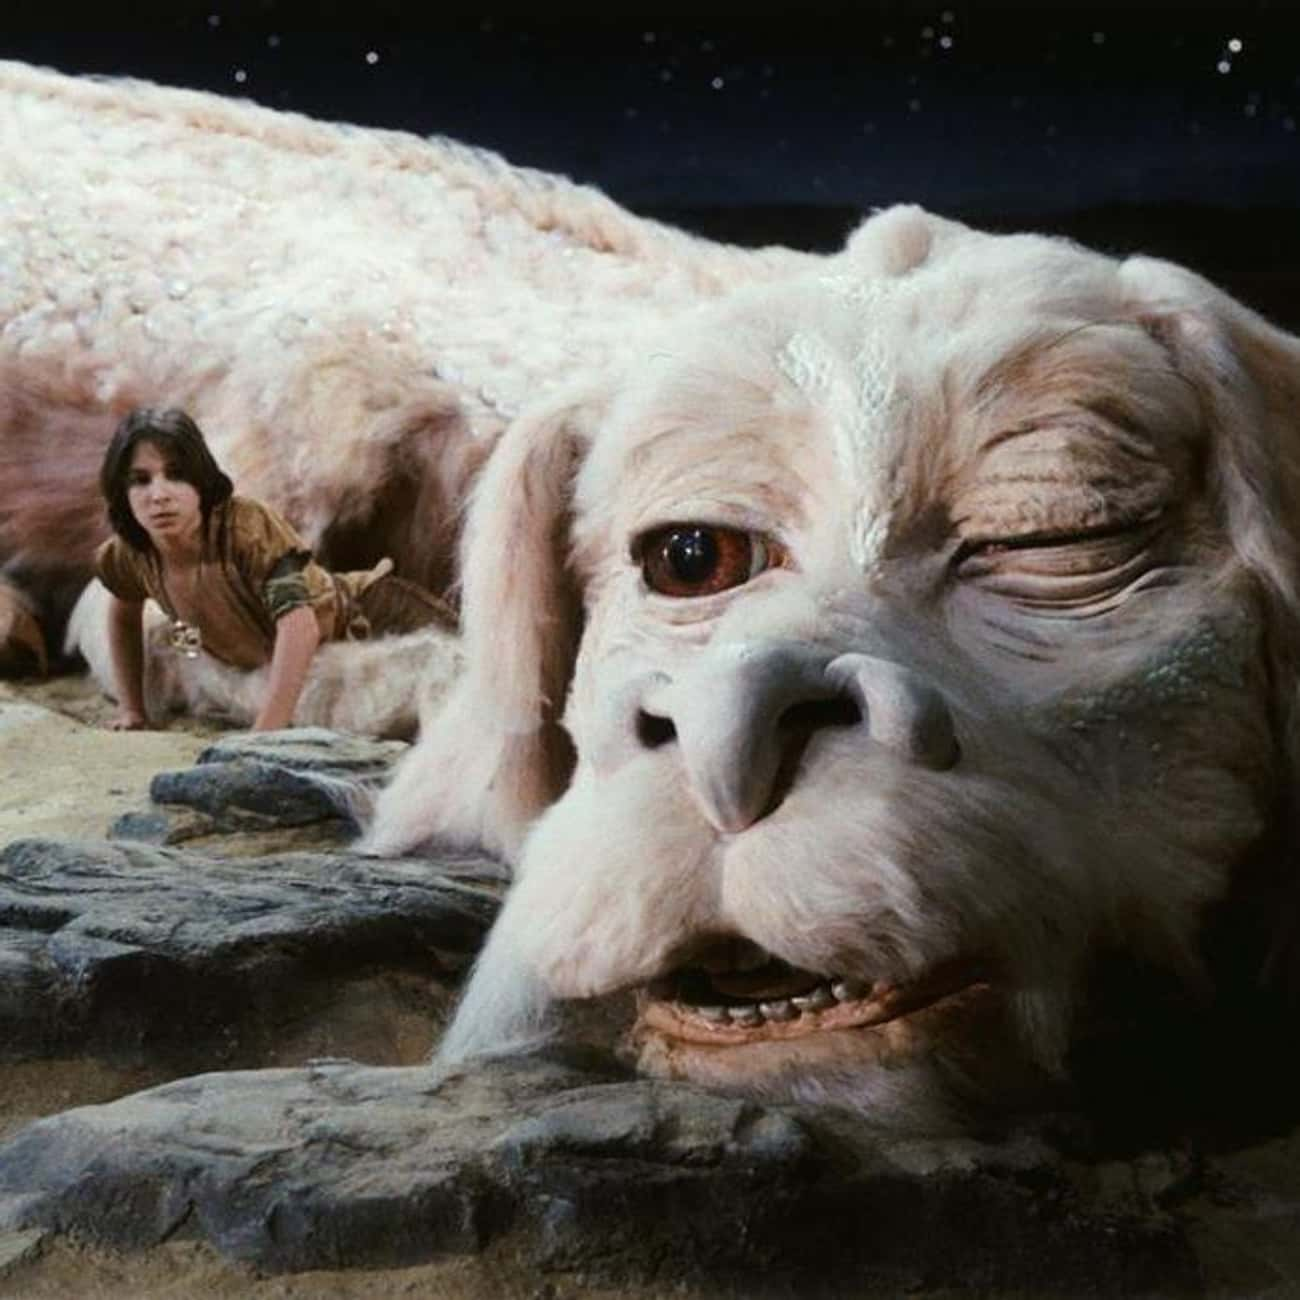 On A Quest is listed (or ranked) 1 on the list The Most Fantastical Quotes From 'The NeverEnding Story'